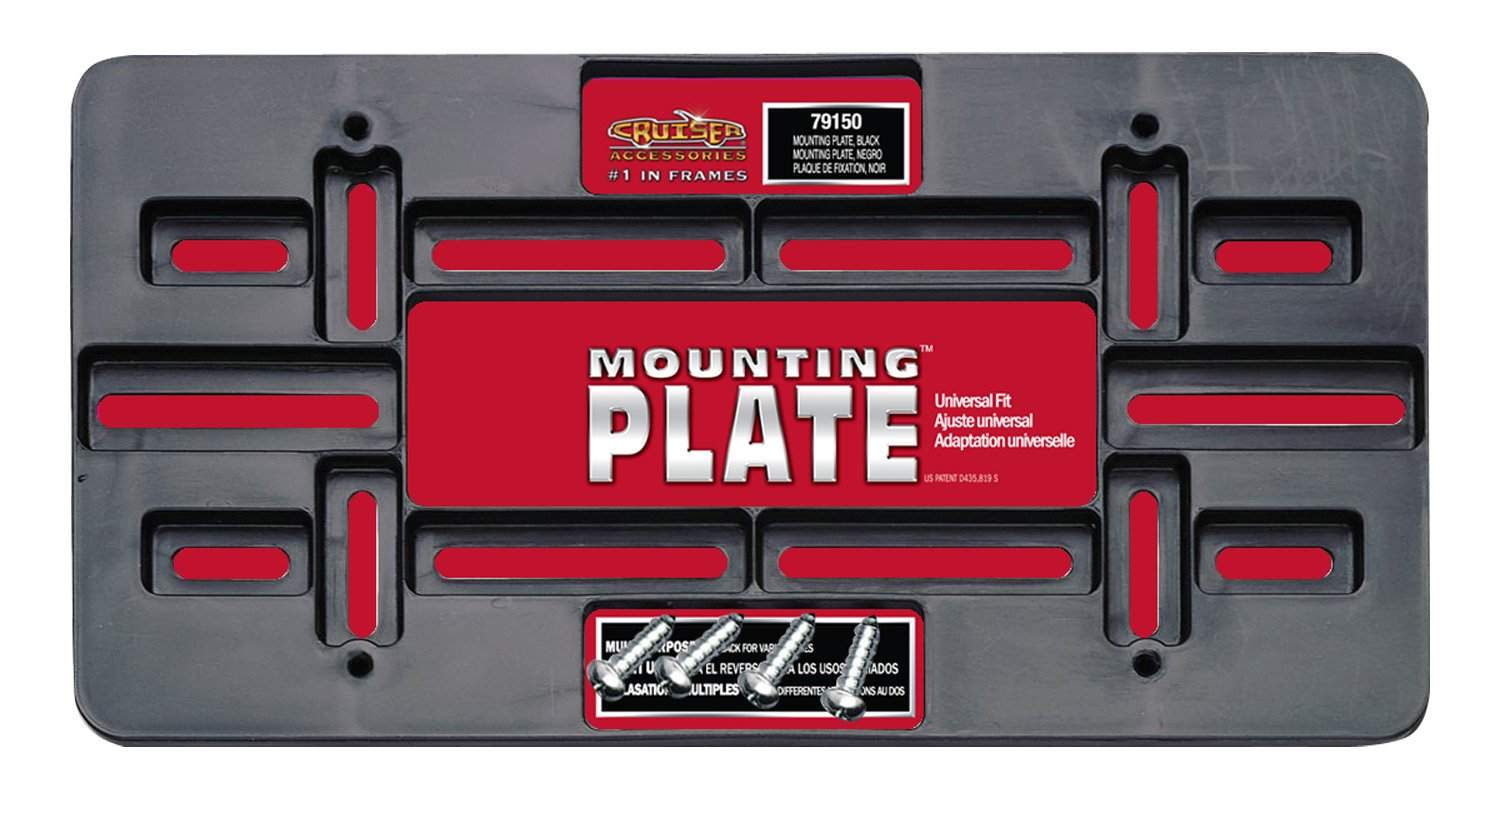 Black Cruiser Accessories 79150 Universal License Plate Mounting Plate